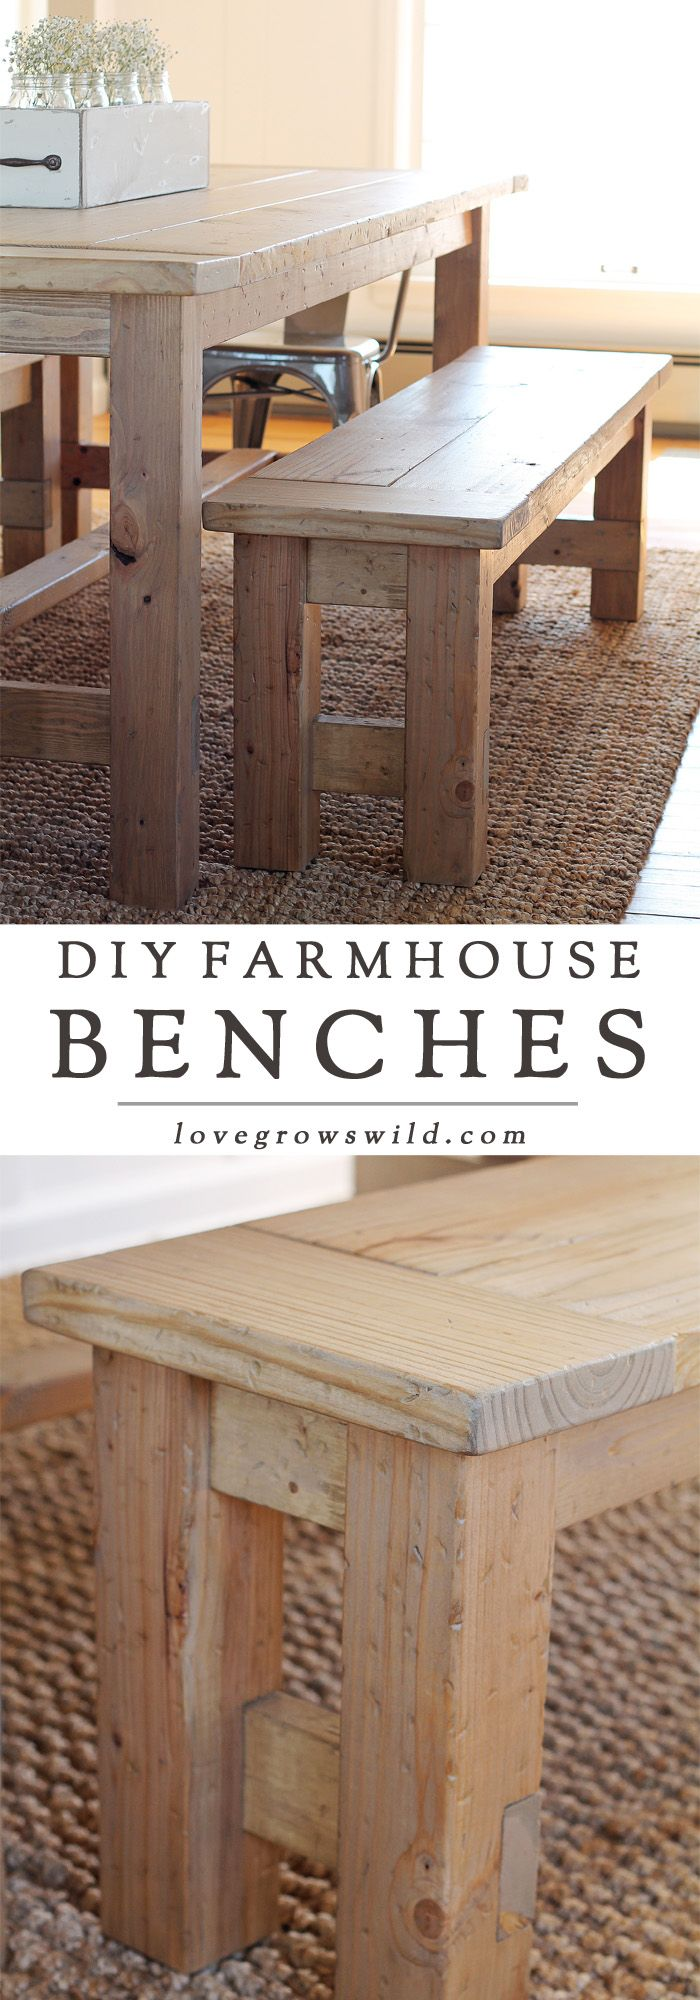 Learn how to build an easy DIY Farmhouse Bench Details at LoveGrowsWild.com